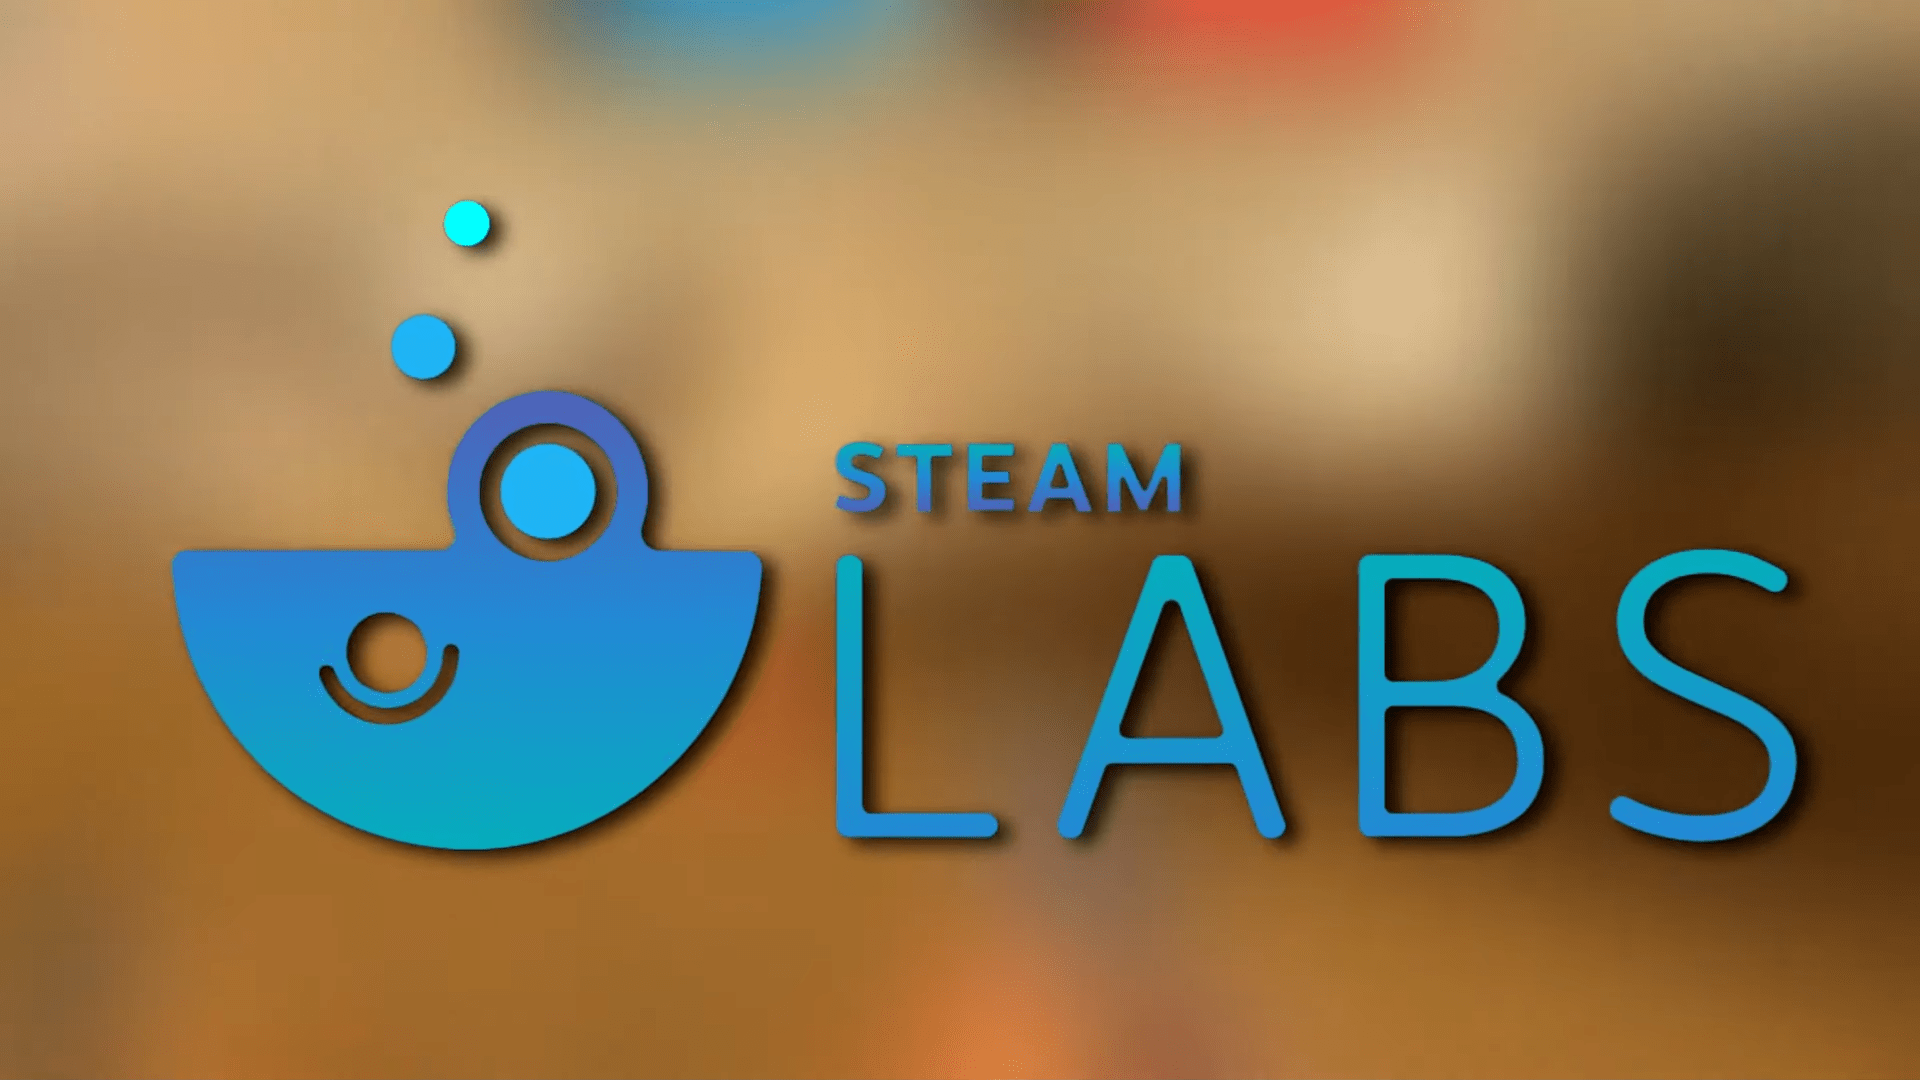 The Steam Labs; Valve's Testing Ground Of New Ideas To Promote Discoverability